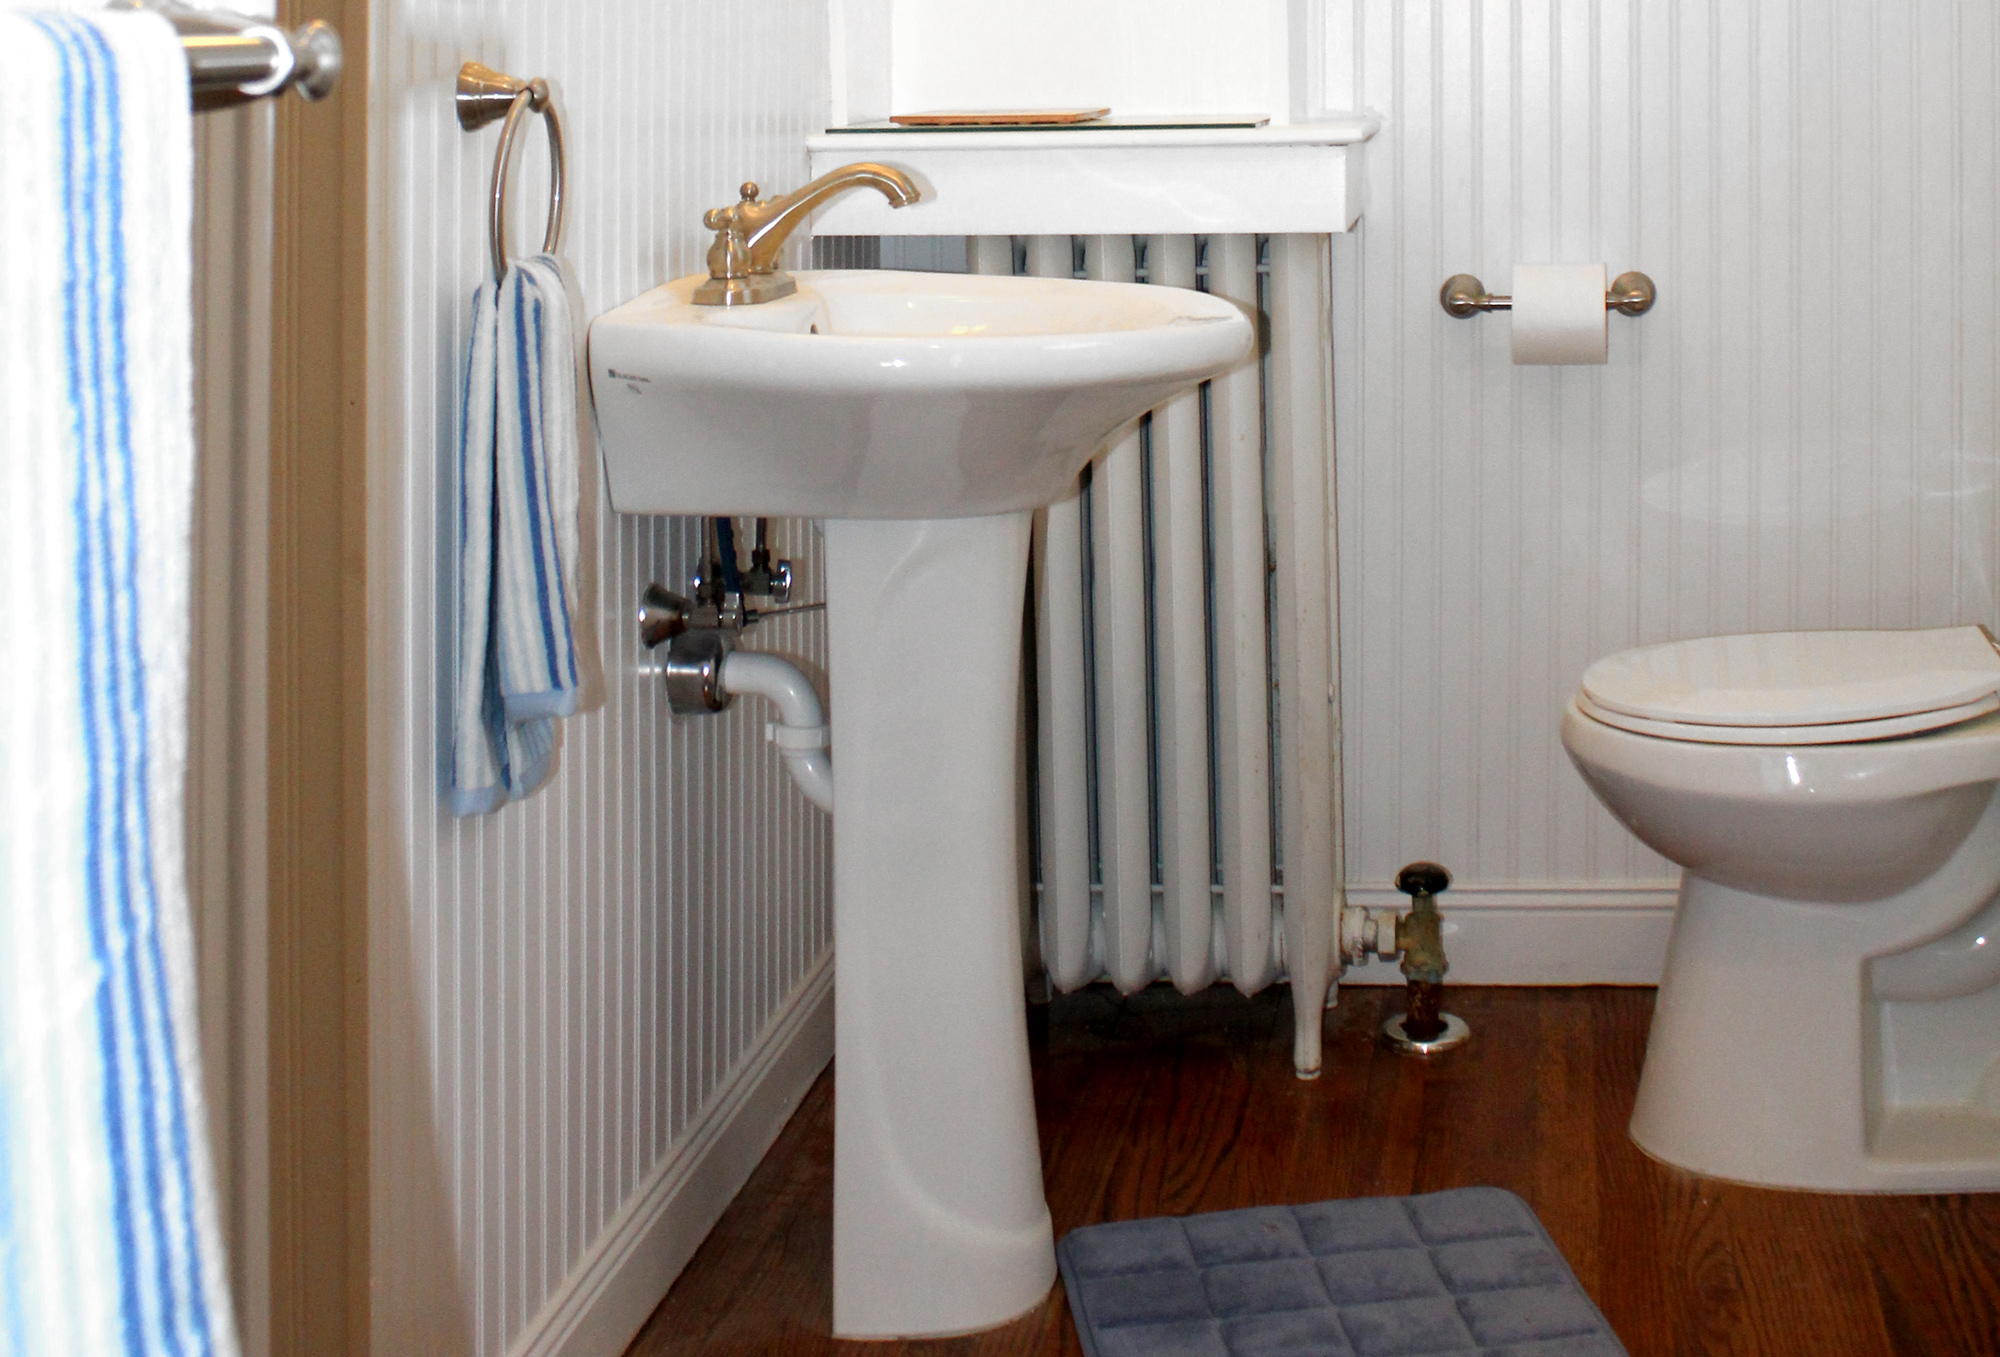 Bathroom Remodel New York Carmel Contractor A D Ford Construction